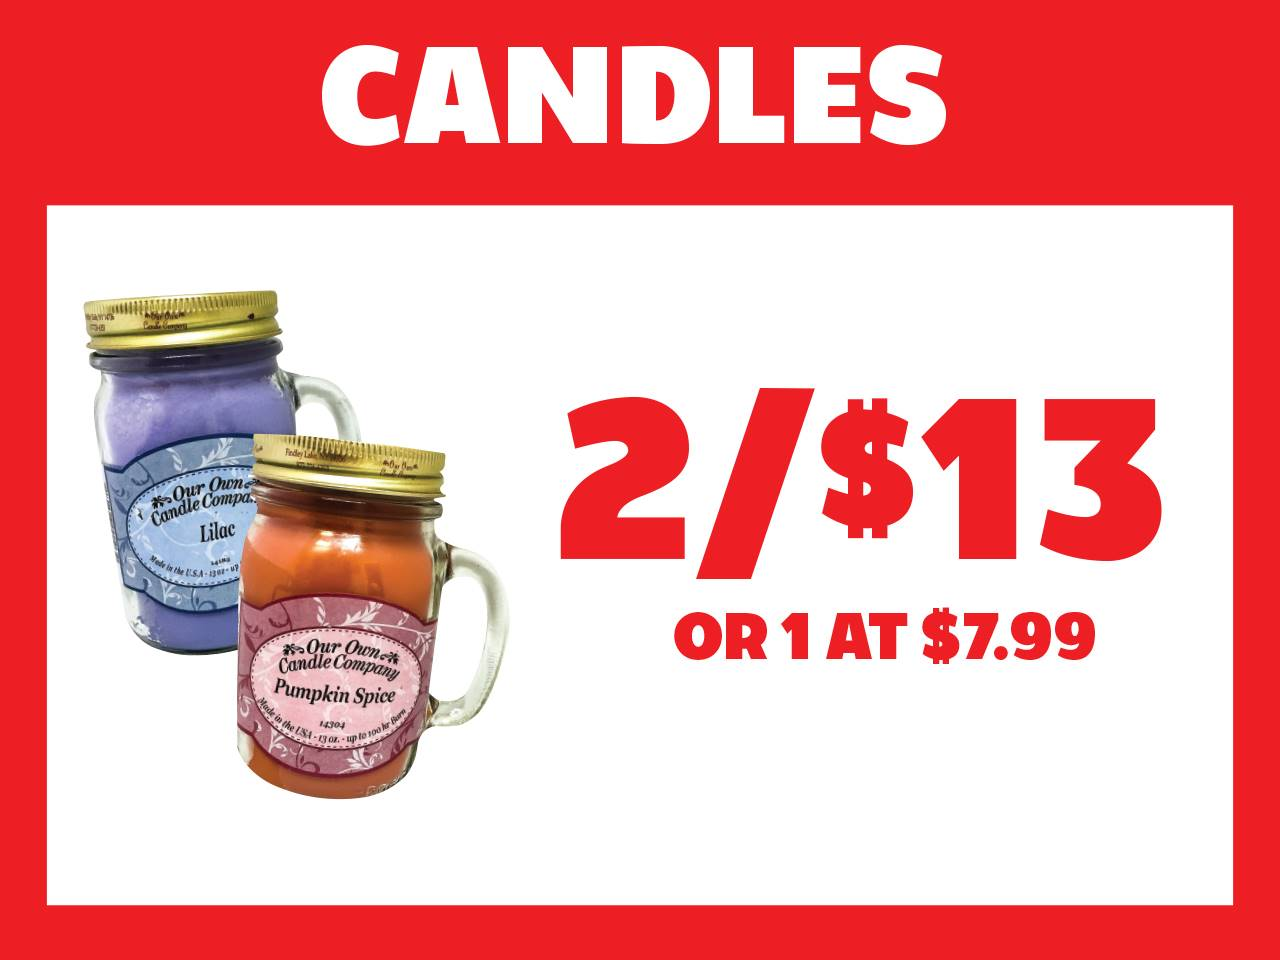 Candles 2 for $13 or 1 at $7.99